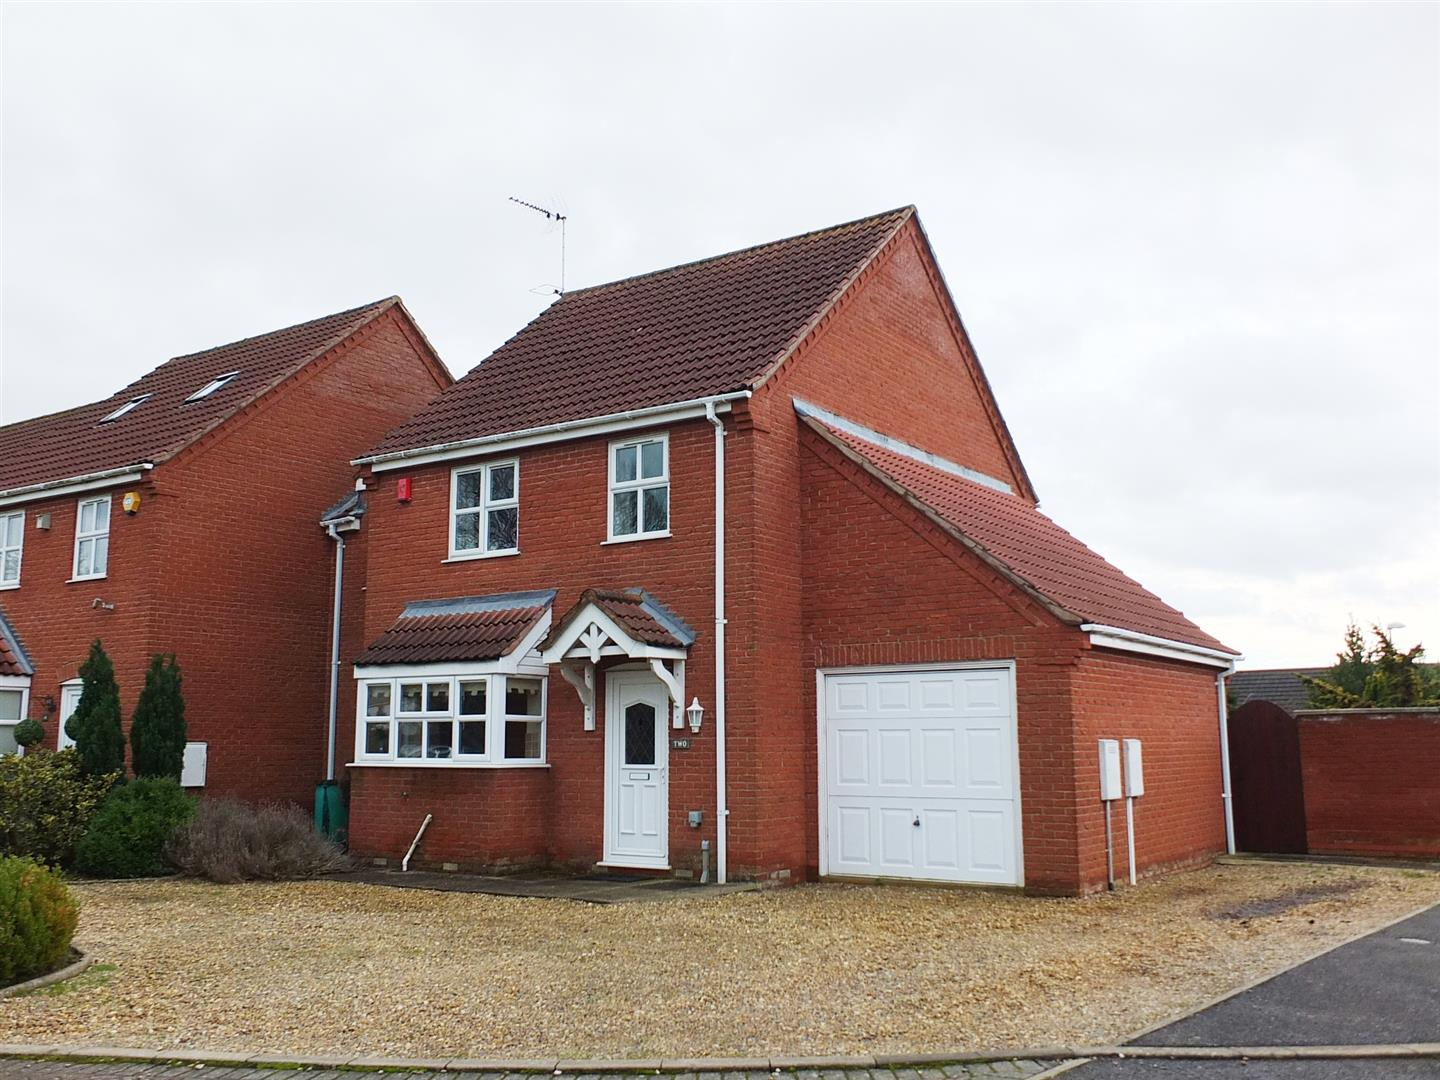 3 bed link detached house for sale in Lutton Spalding, PE12 9PP, PE12